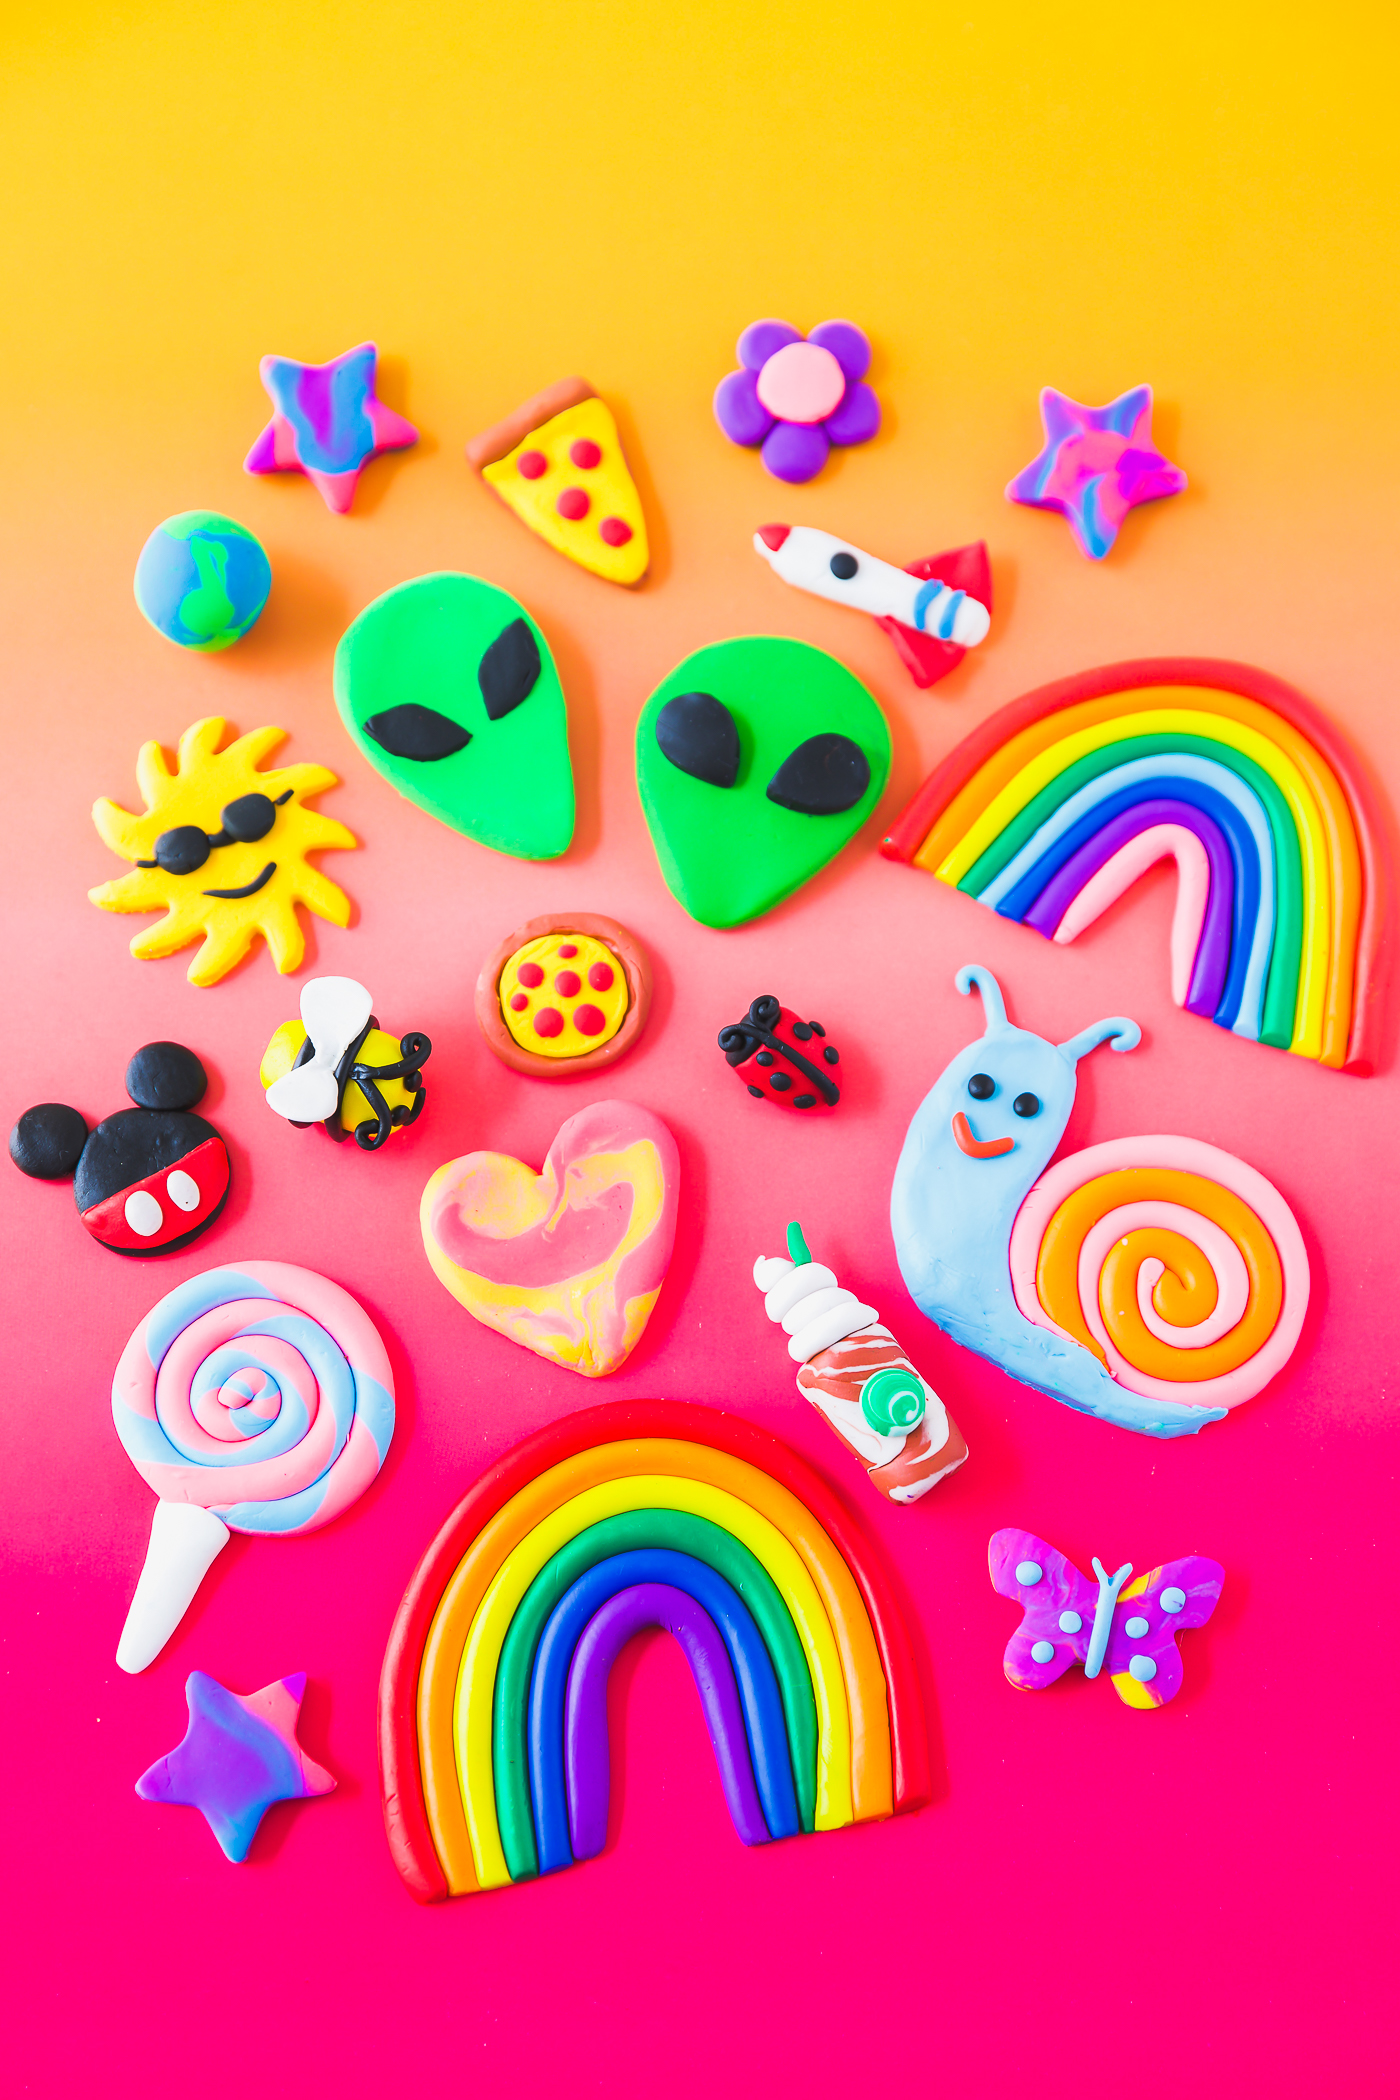 colorful clay eraser designs with a rainbow, Mickey Mouse, and lollipop